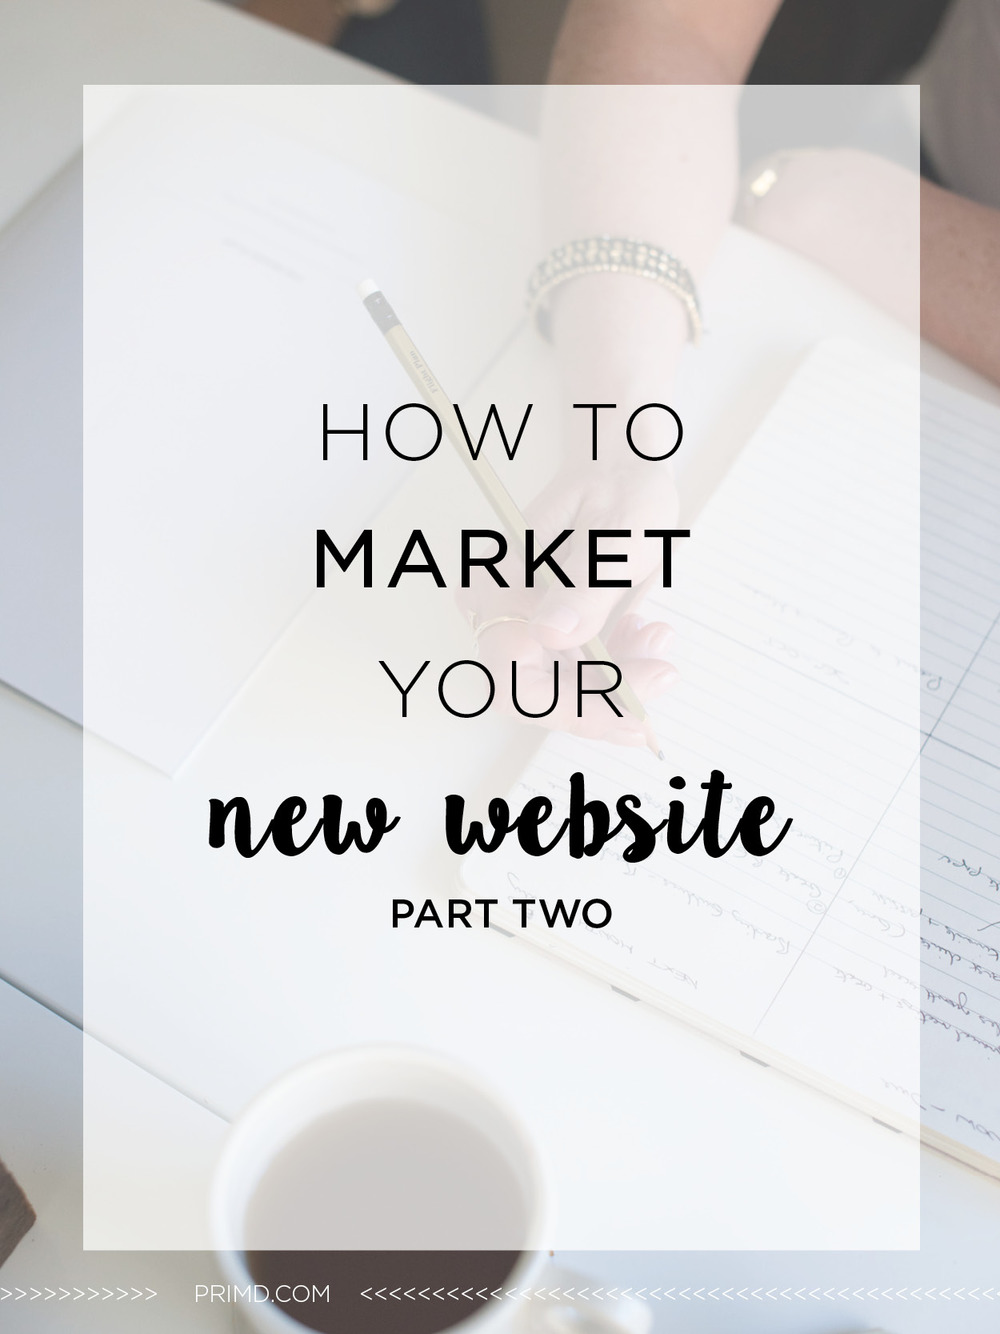 Primd Marketing - How to Market Your Website Part 2